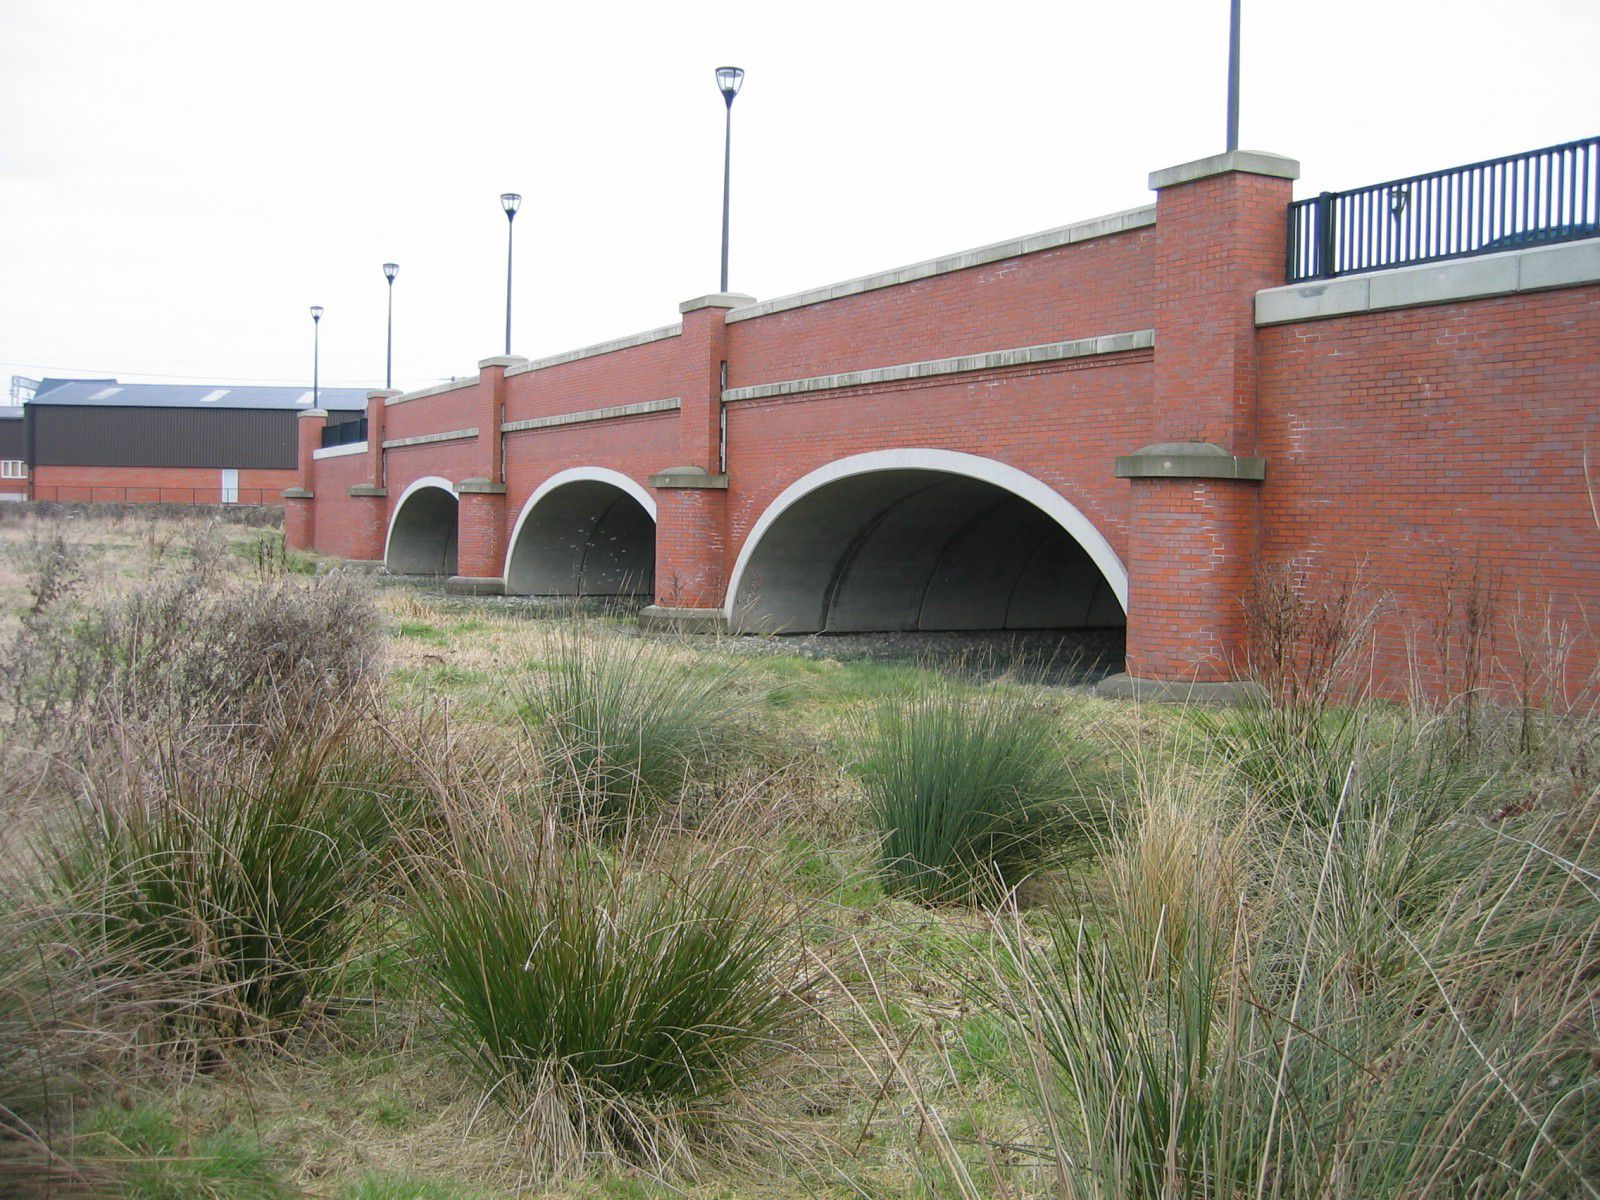 Rugeley Eastern Bypass Stage 2 - Station Road Flood Relief Arches S4